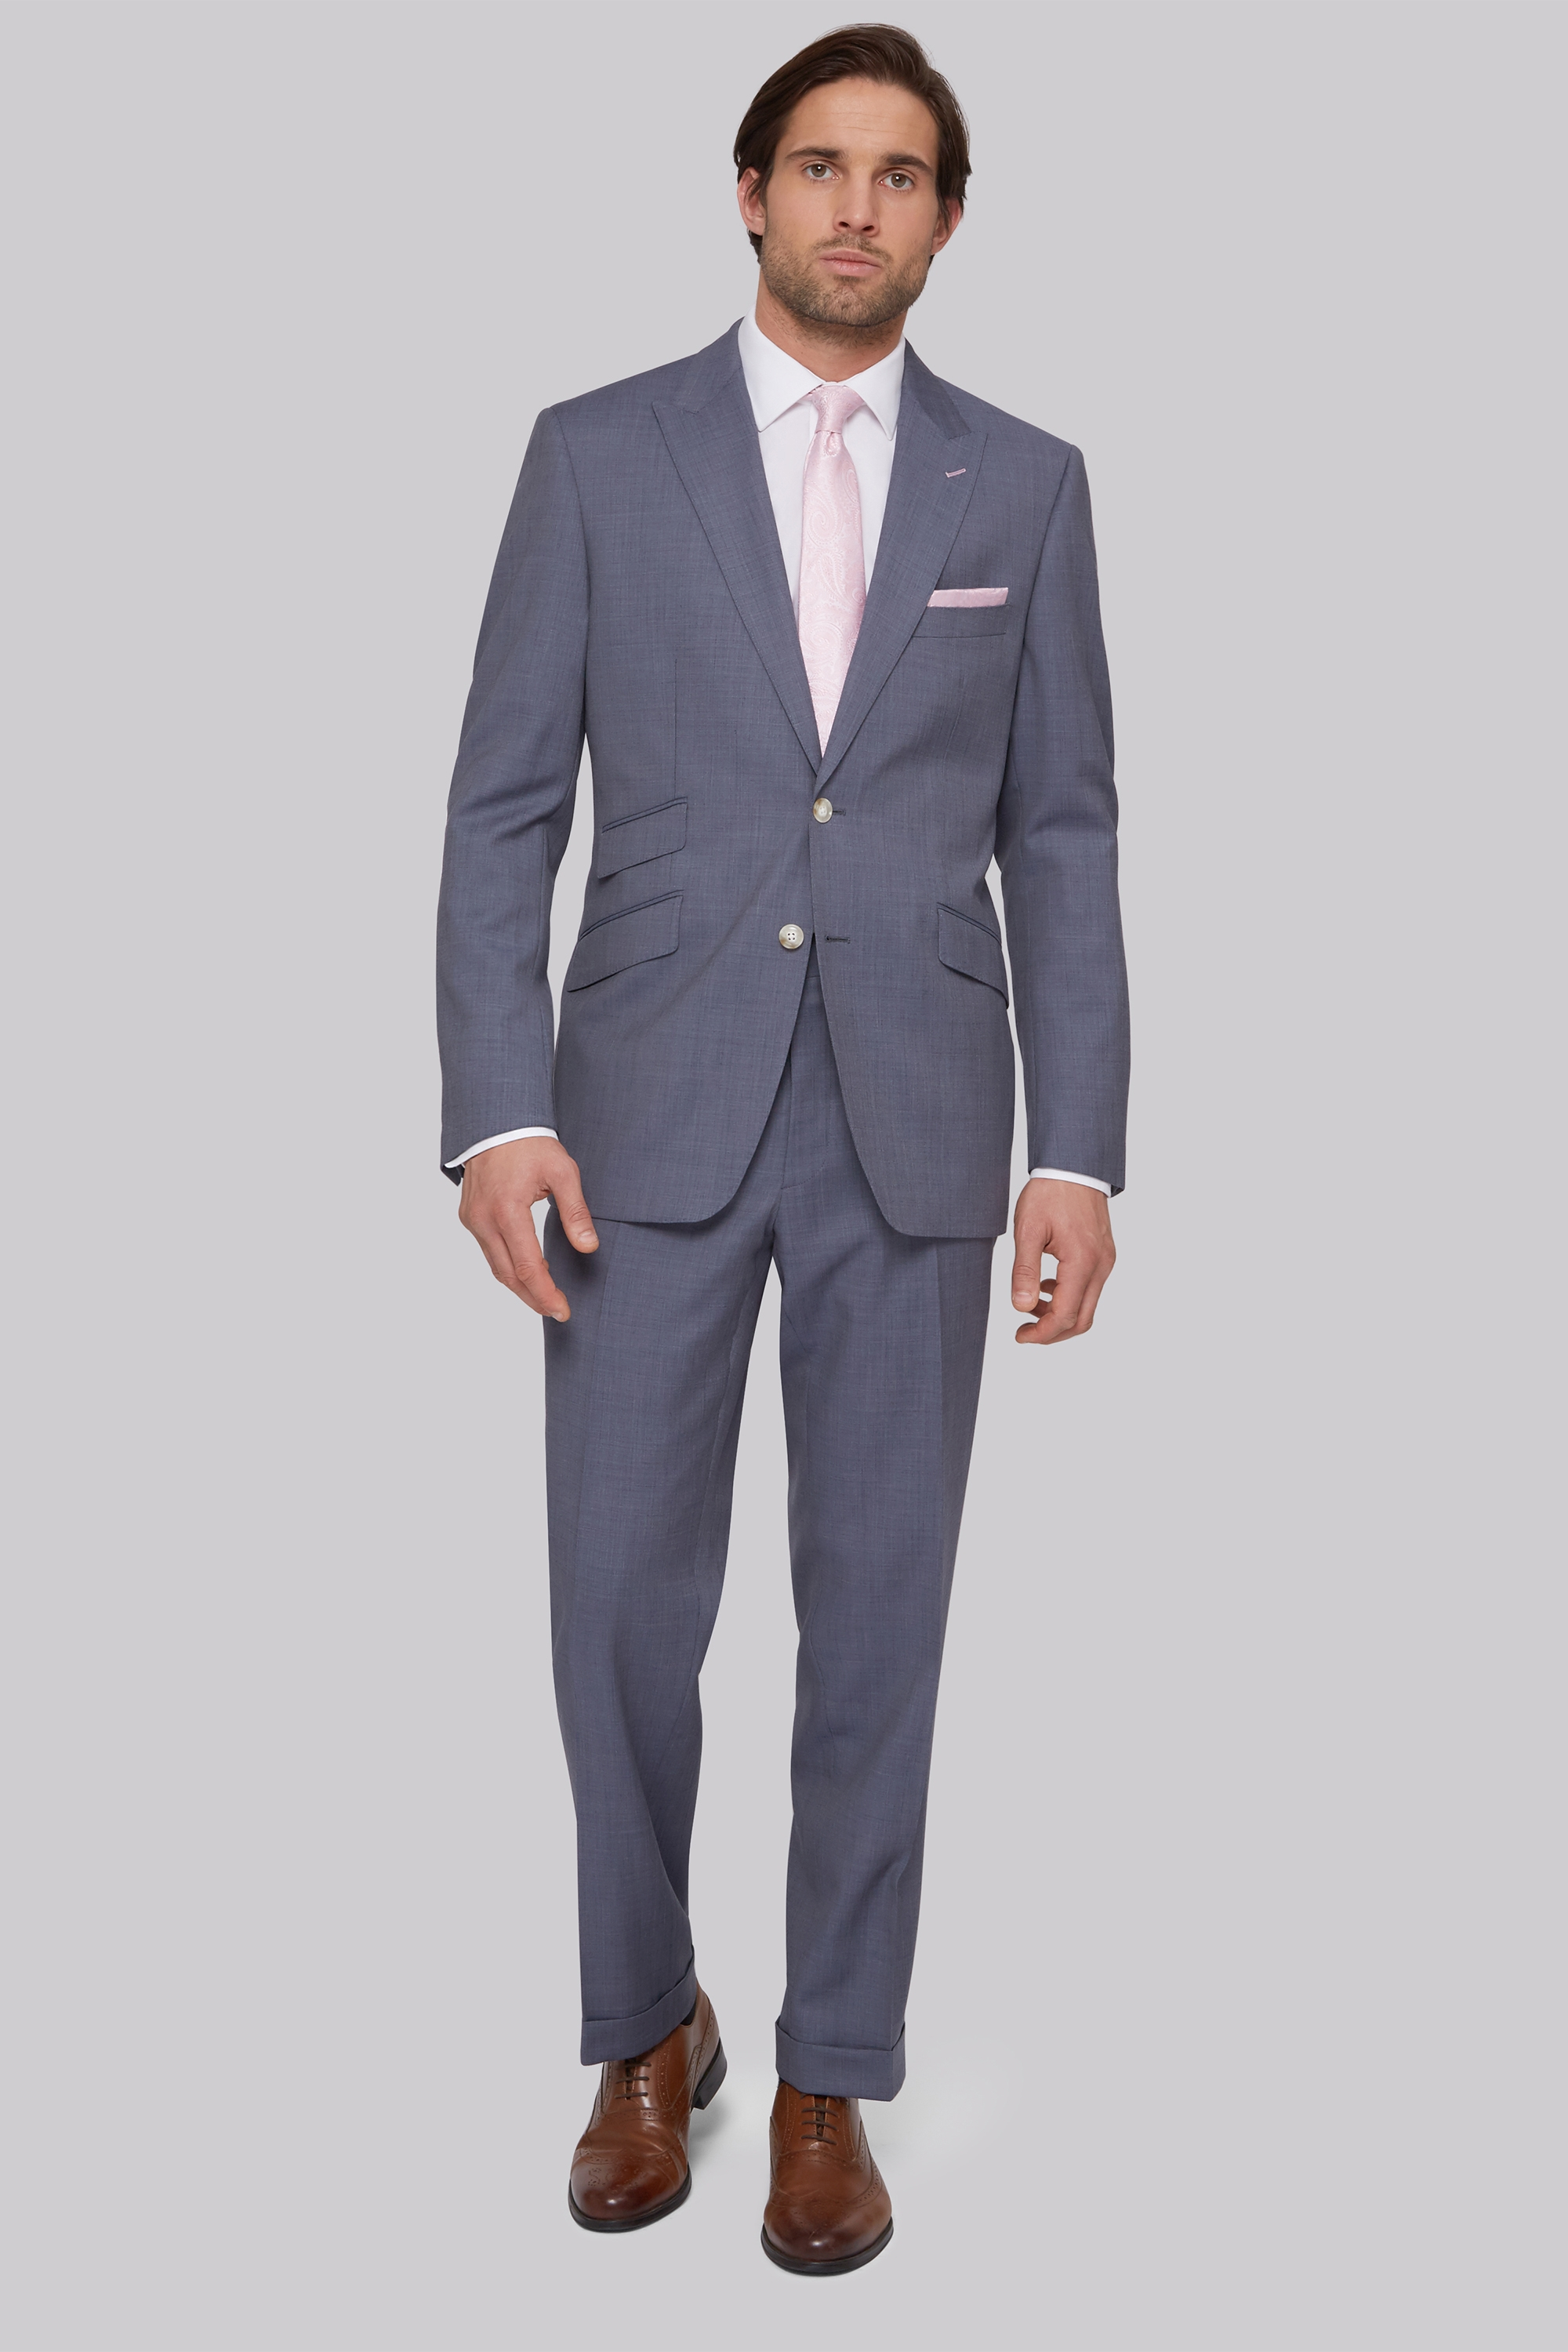 Bros Regular Fit Blue Grey Suit